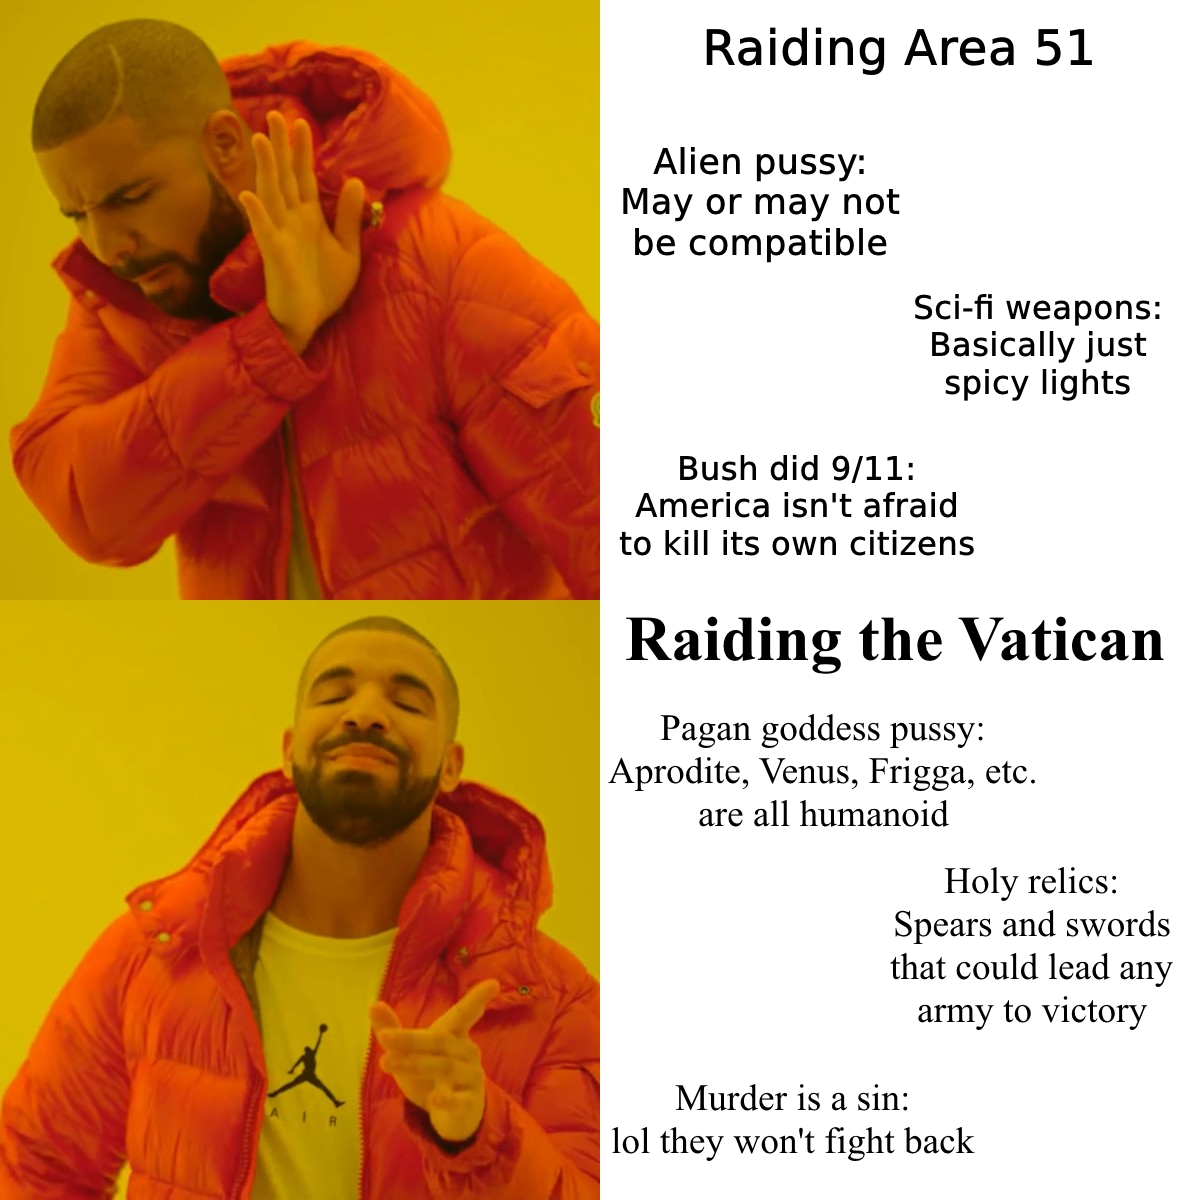 The Pontifex Swiss Guard won't know what hit them